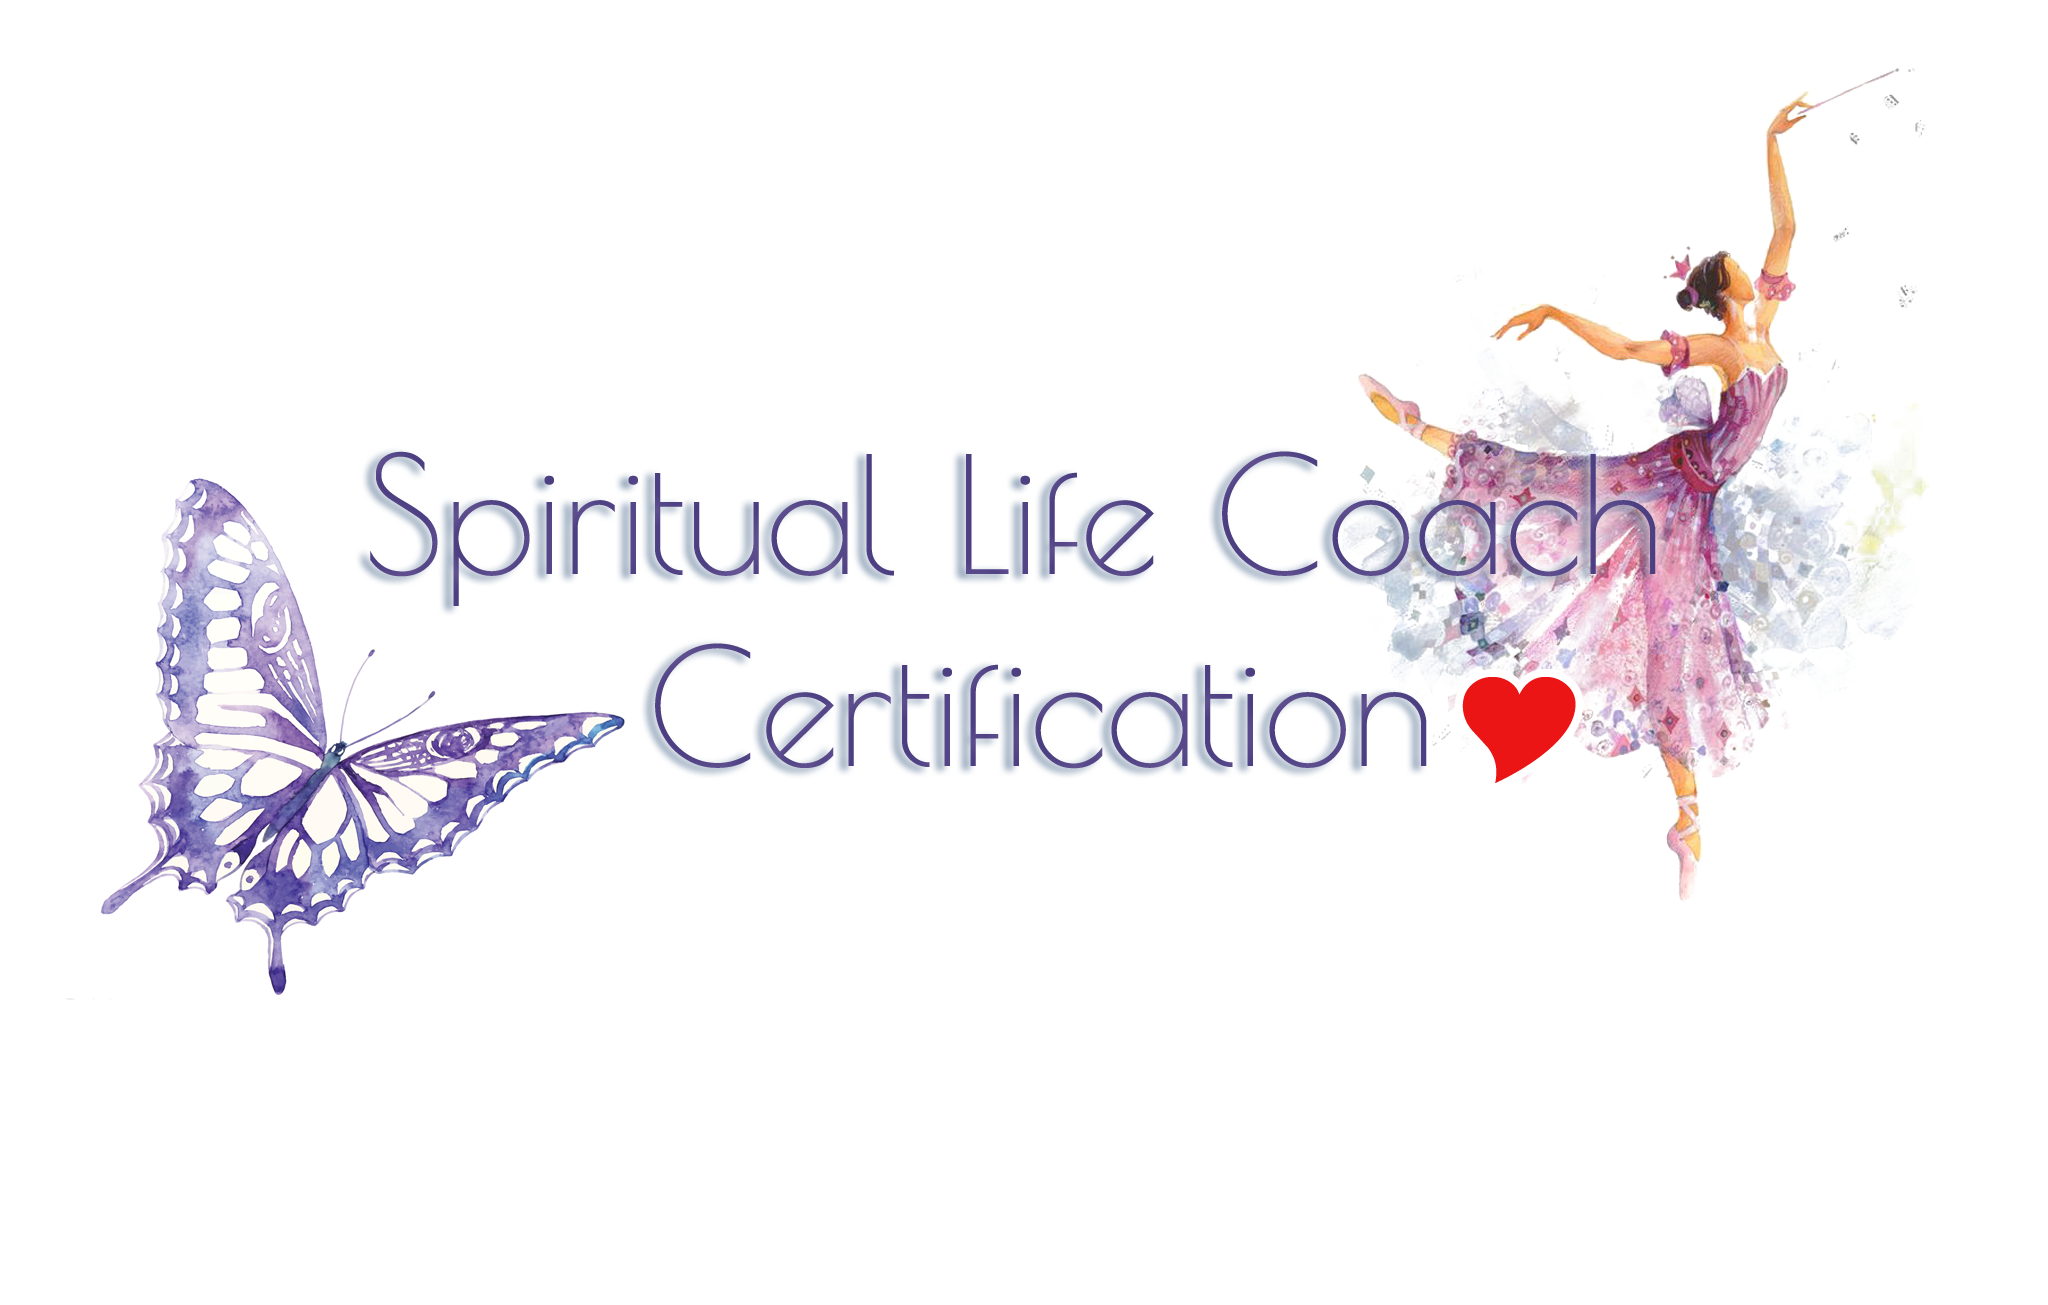 Spiritual Life Coach Certification Emotional Wellness With Crystal